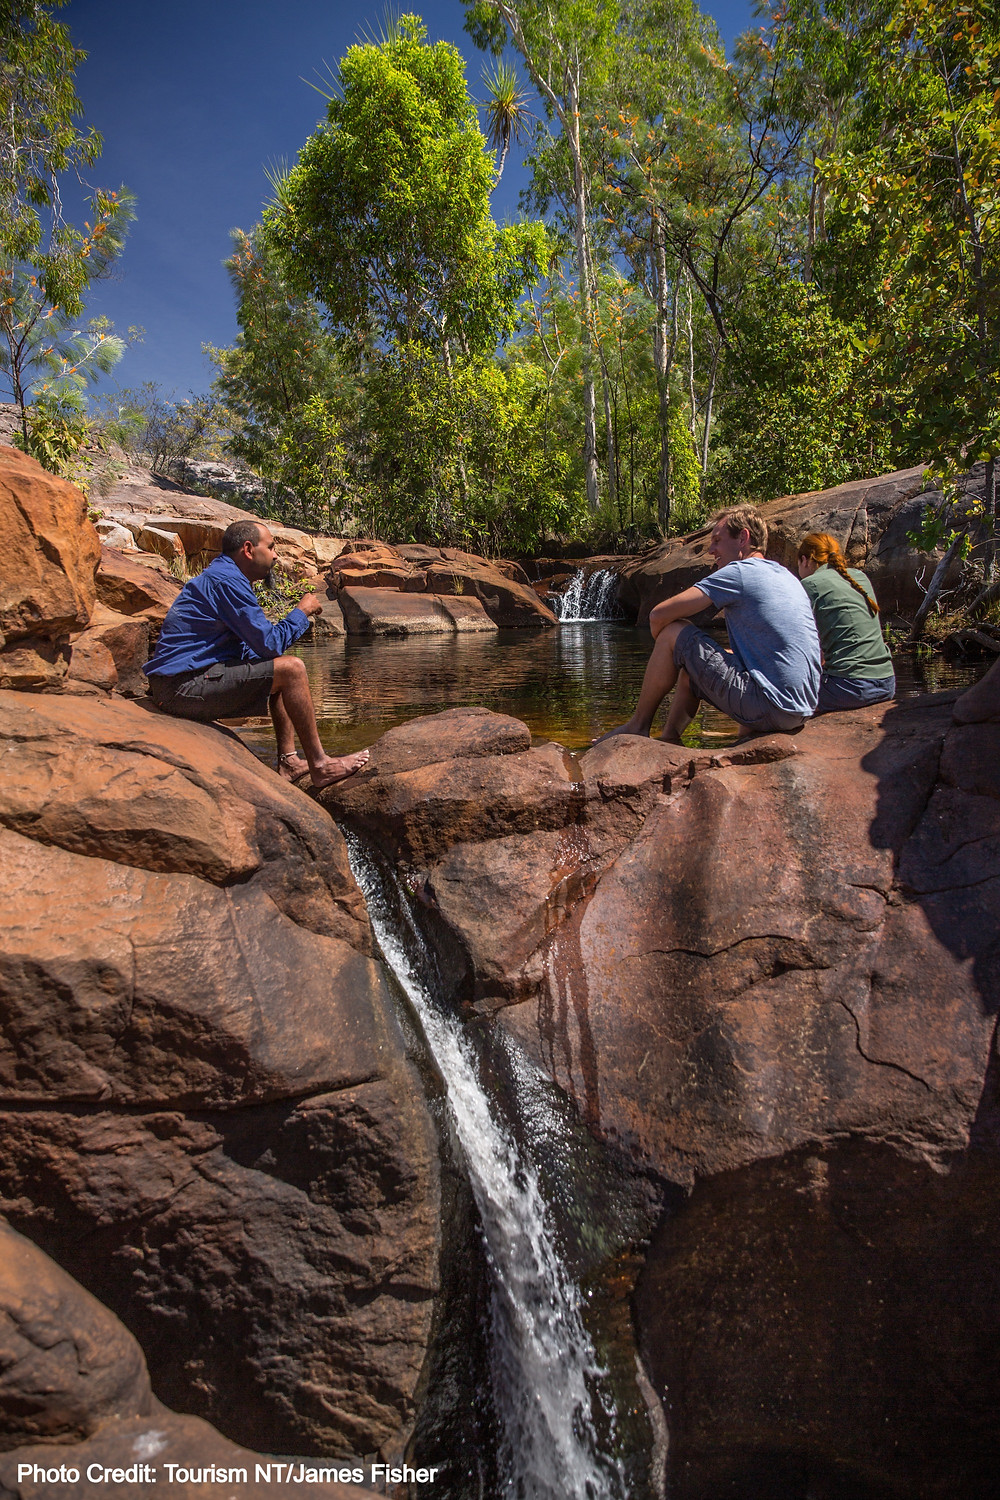 Couple with tour guide sitting beside rock pool at Kakadu National Park, Northern Territory Australia